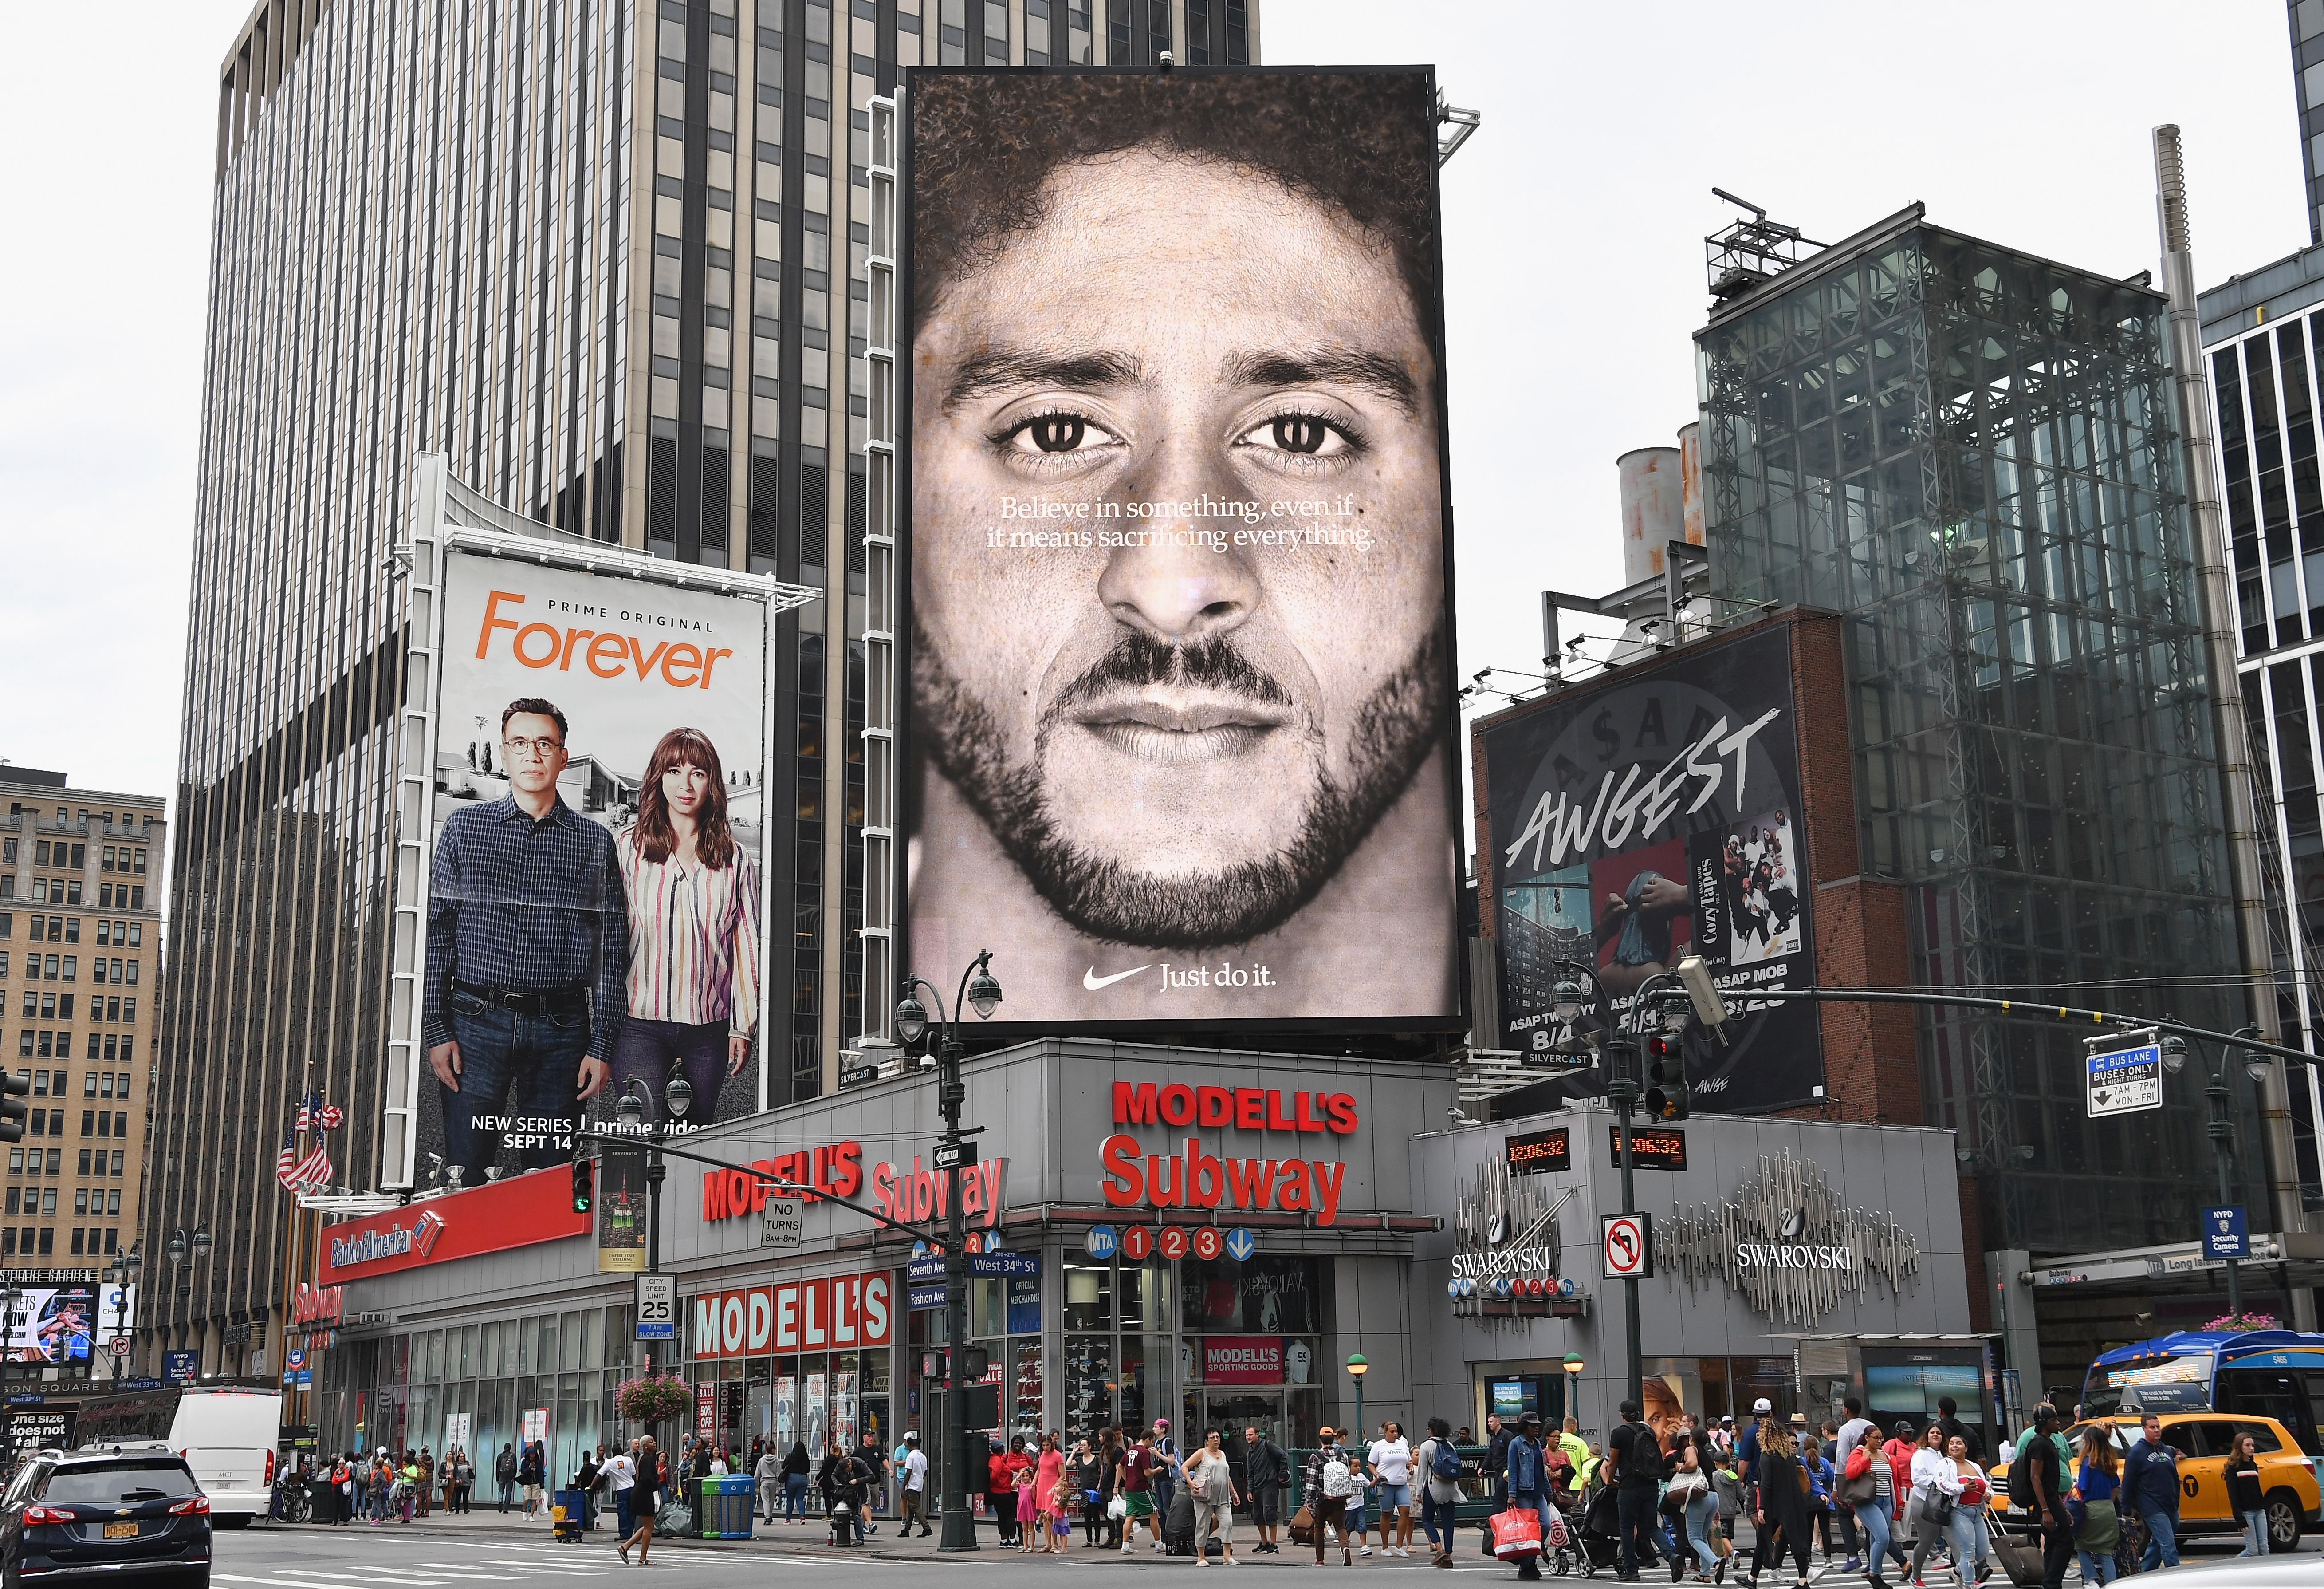 A Nike Ad featuring American football quarterback Colin Kaepernick is on diplay September 8, 2018 in New York City. - Nike's new ad campaign featuring Kaepernick, the American football player turned activist against police violence, takes a strong stance on a divisive issue which could score points with millennials but risks alienating conservative customers. The ads prompted immediate calls for Nike boycotts over Kaepernick, who has been castigated by US President Donald Trump and other conservatives over his kneeling protests during the playing of the US national anthem. (Photo credit ANGELA WEISS/AFP/Getty Images)